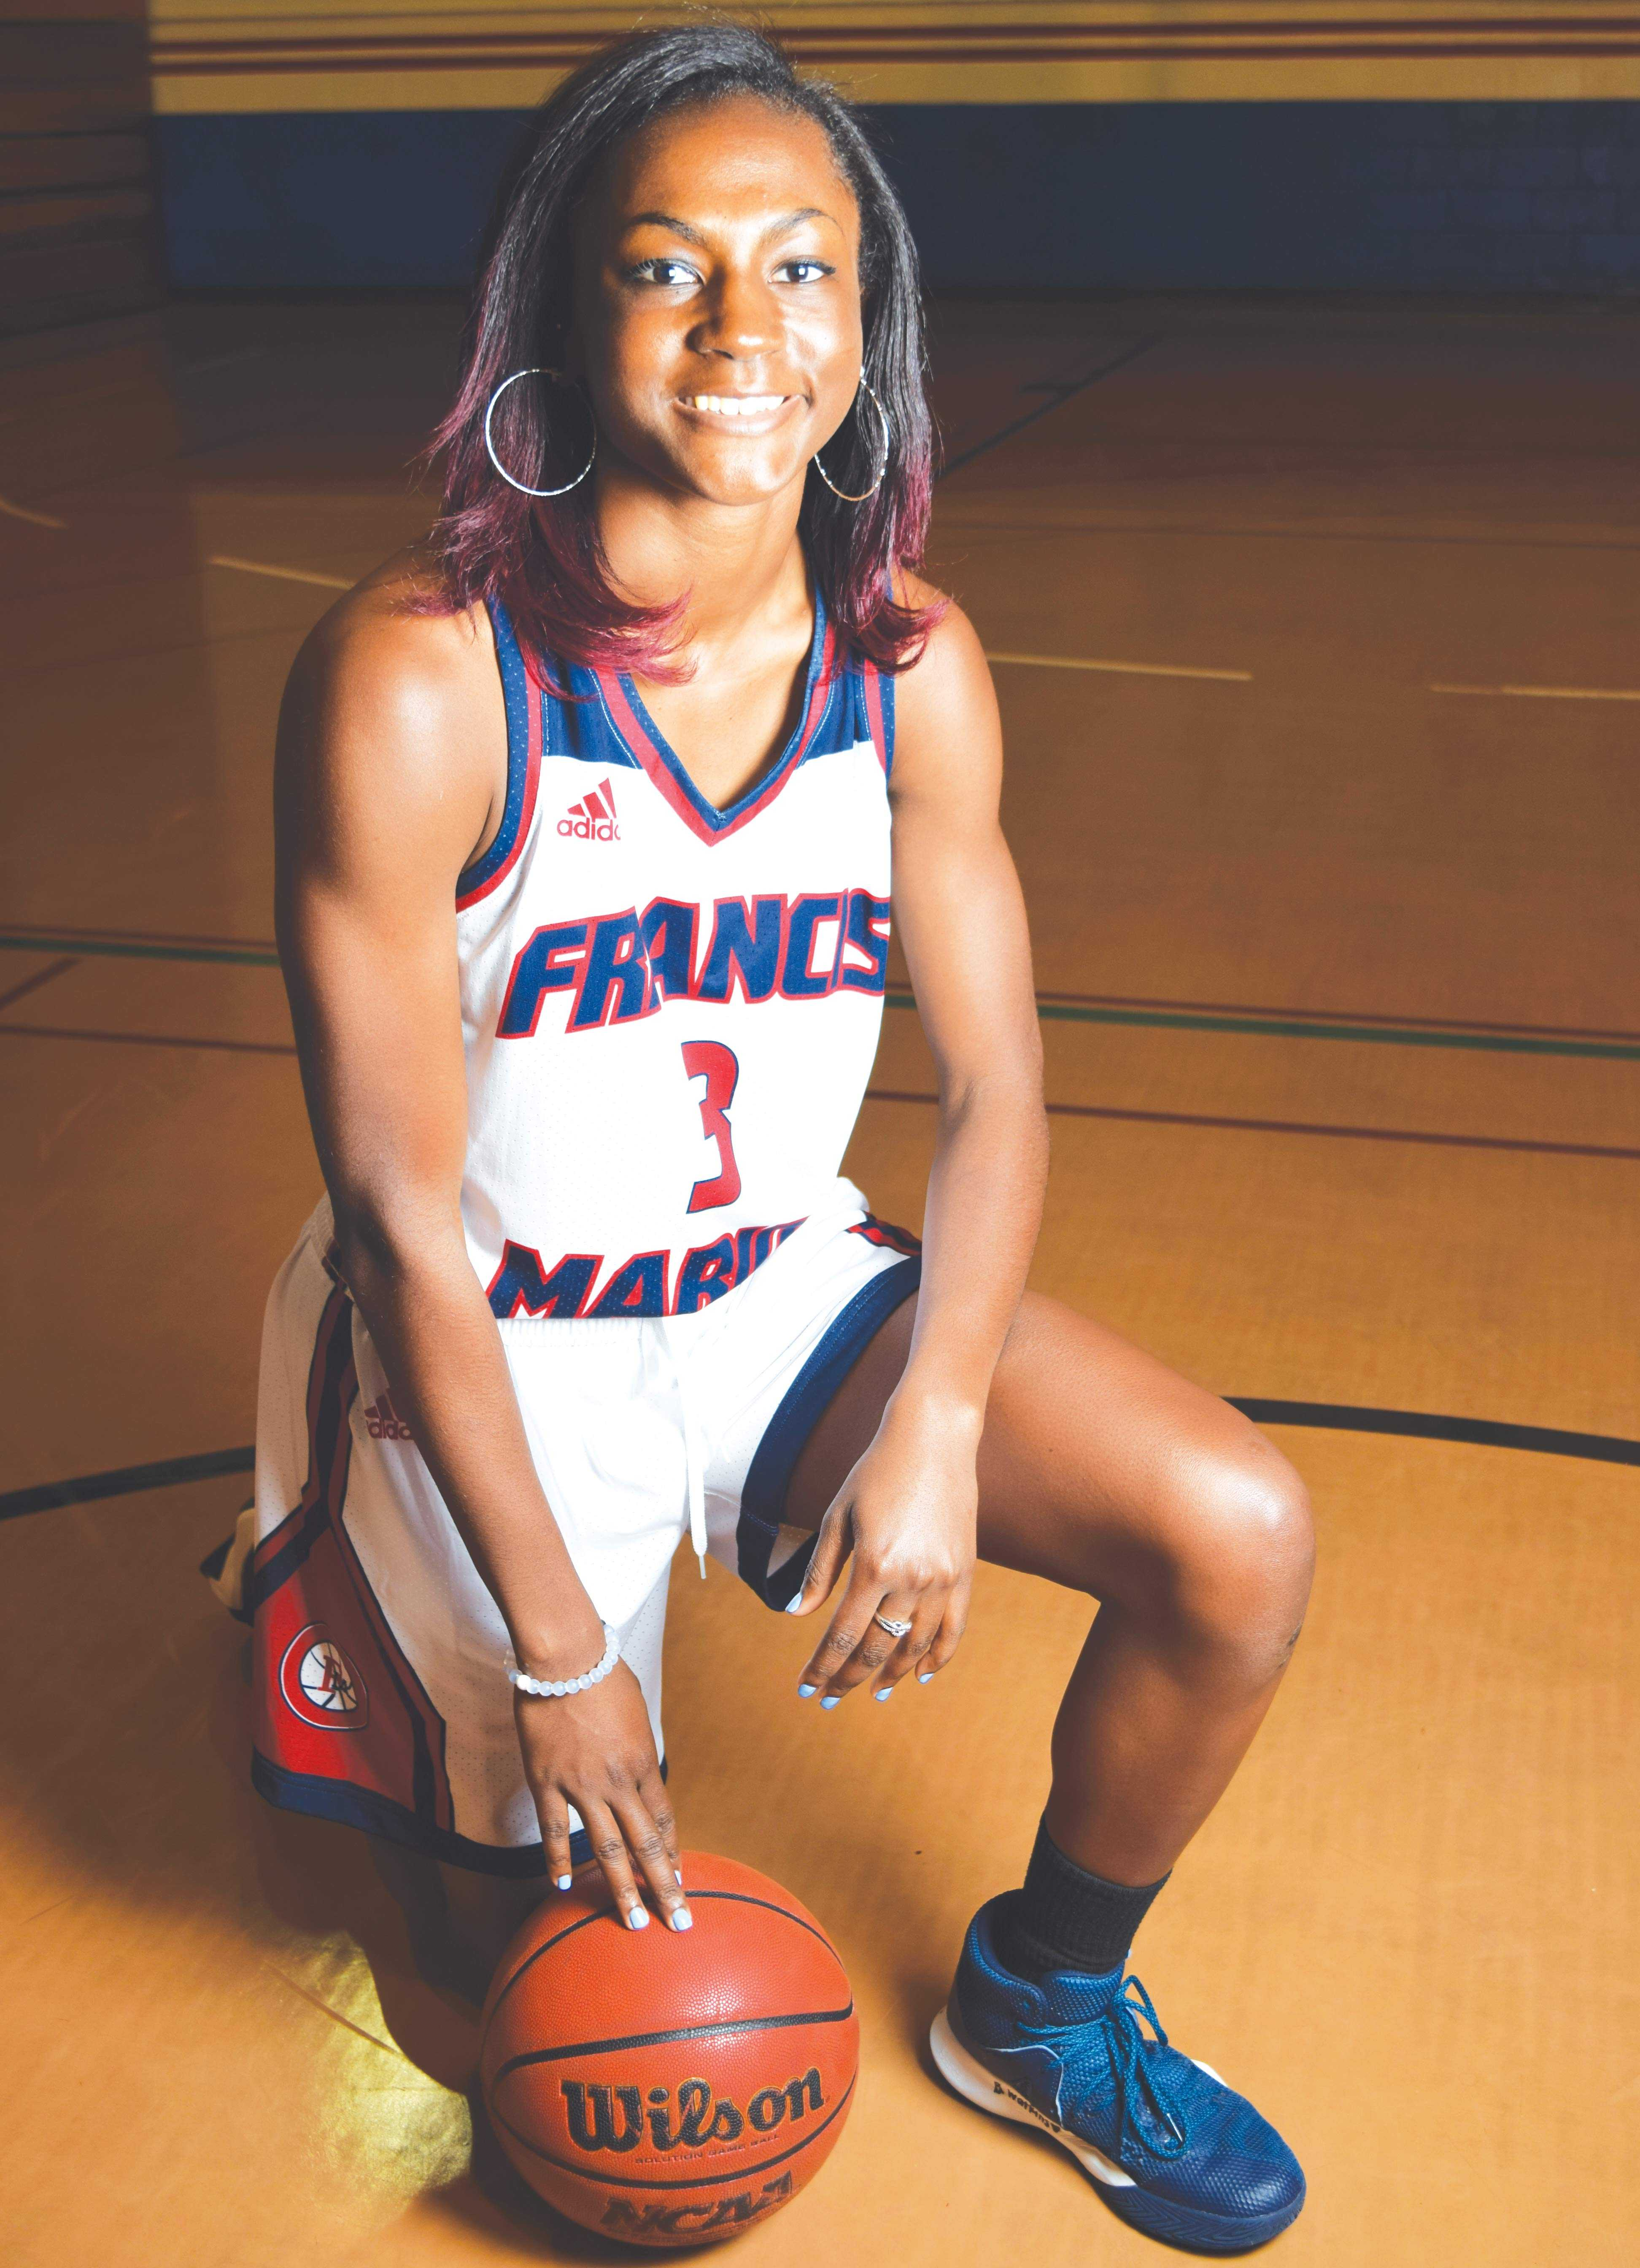 Briana Burgins has been playing basketball since she was 4-years-old, when her parents were her coaches on her first team.